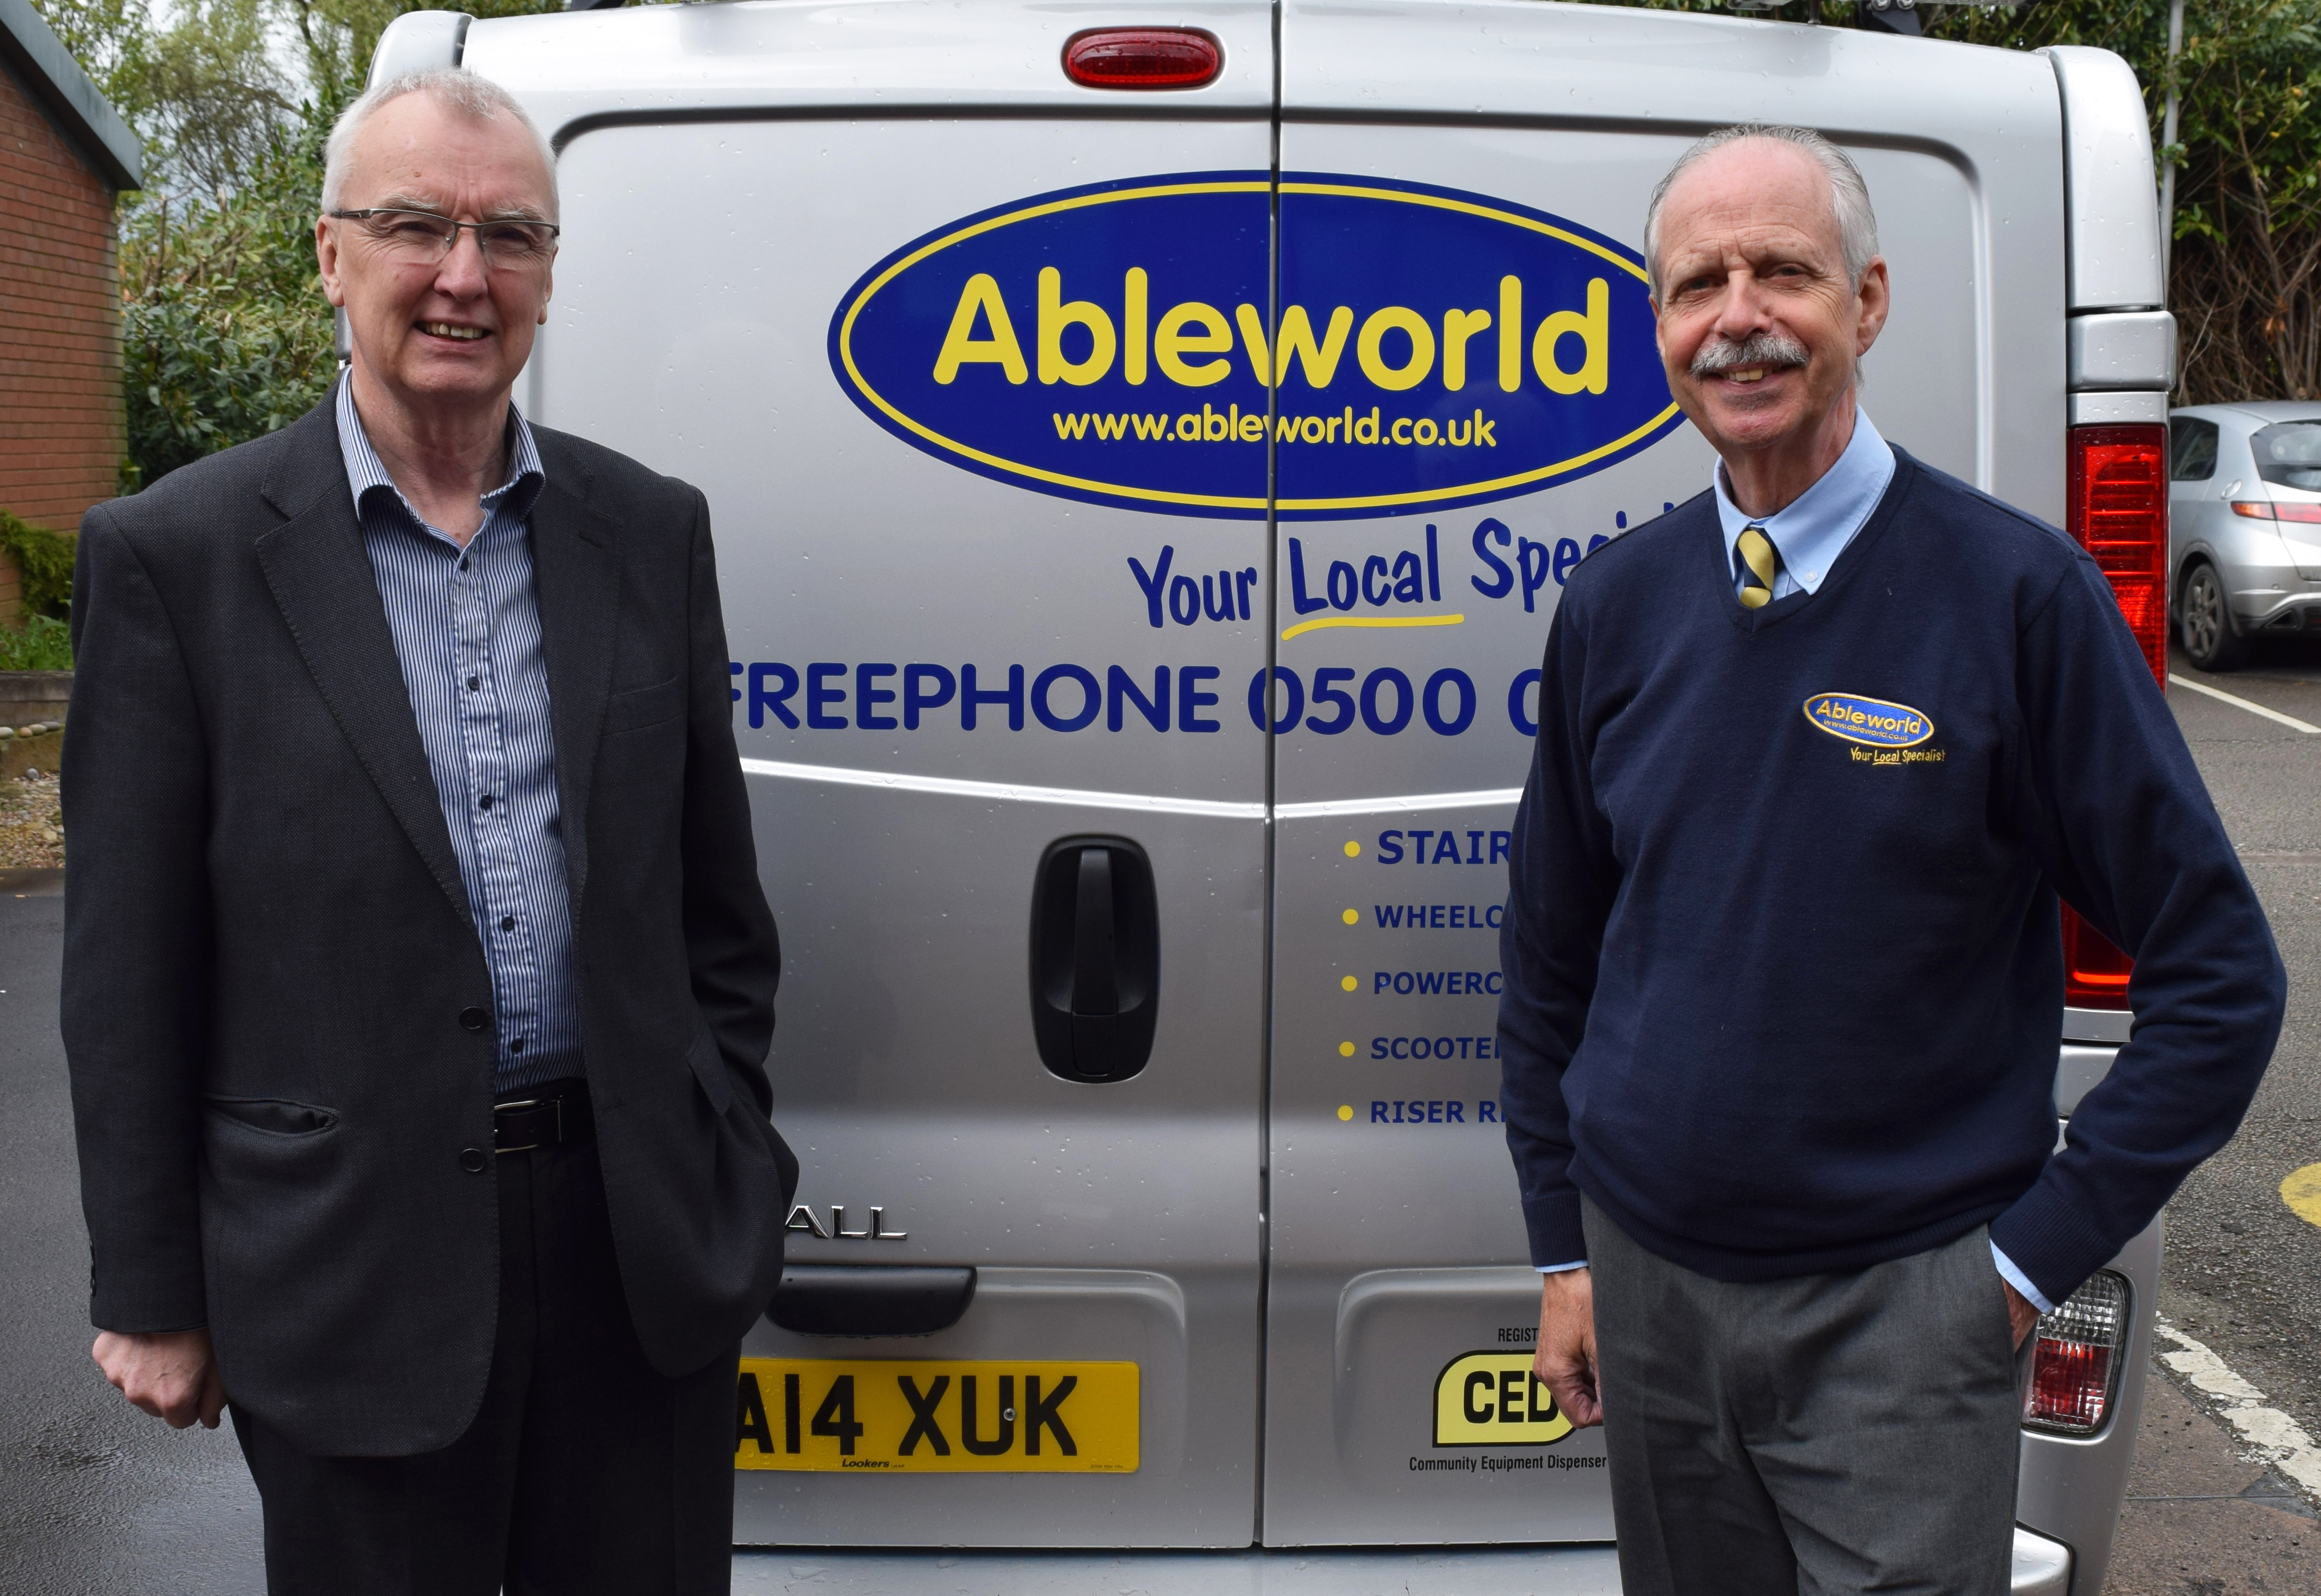 Ableworld Mike Williams (left) and Paul Boniface